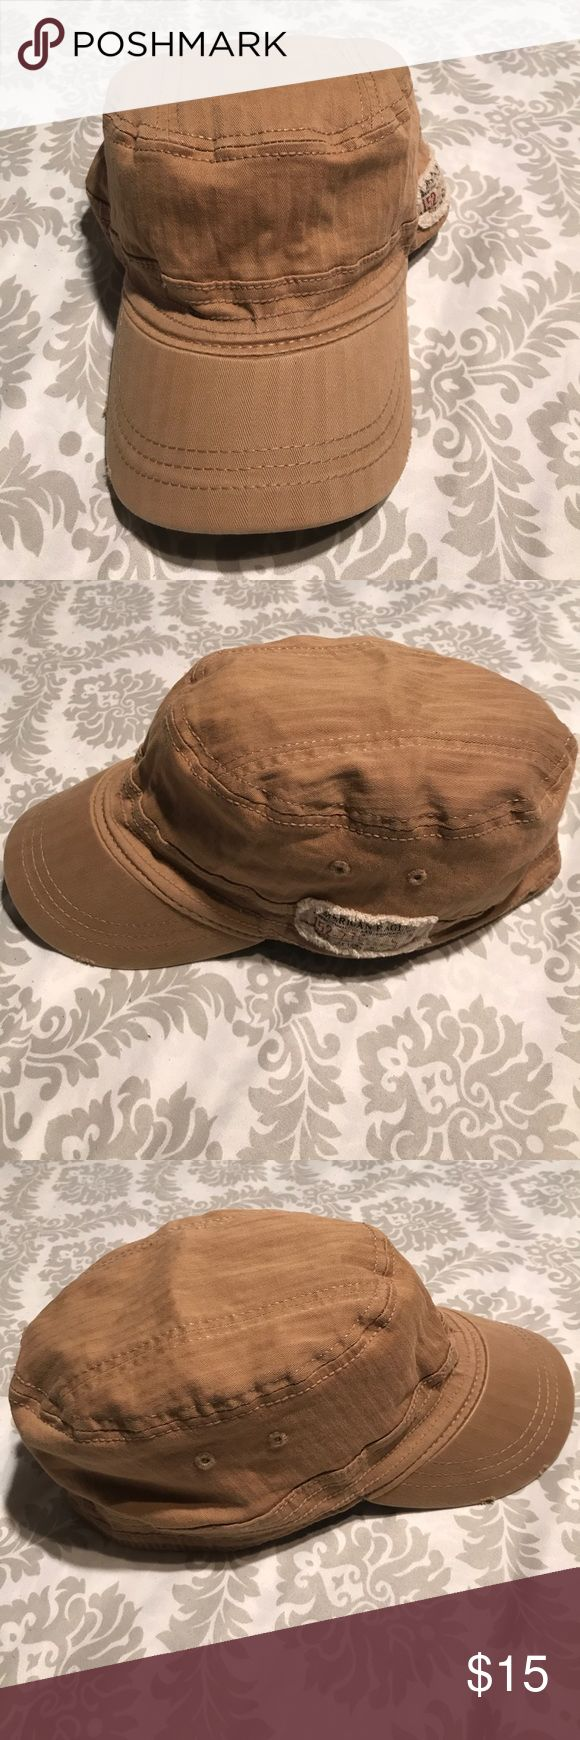 American Eagle Outfitters Unisex military hat American Eagle Outfitters unisex military hat Army cap. EUC. Size S-M. Elastic all around the inner rim, give it a more extra stretch for better fitting. 97% Cotton and 3% Spandex American Eagle Outfitters Accessories Hats